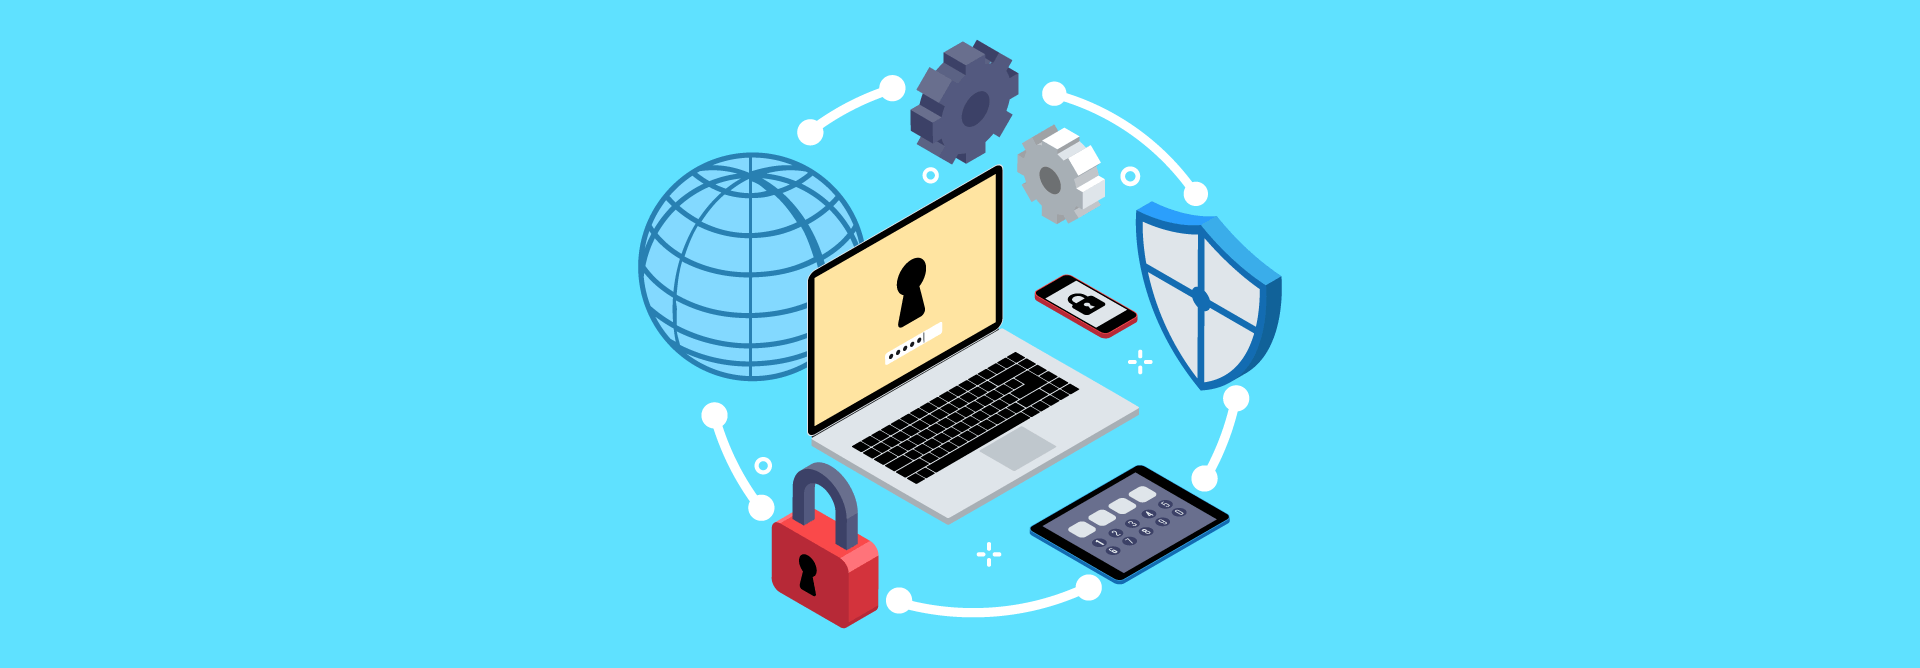 Tips to Maximize the Security of your Business